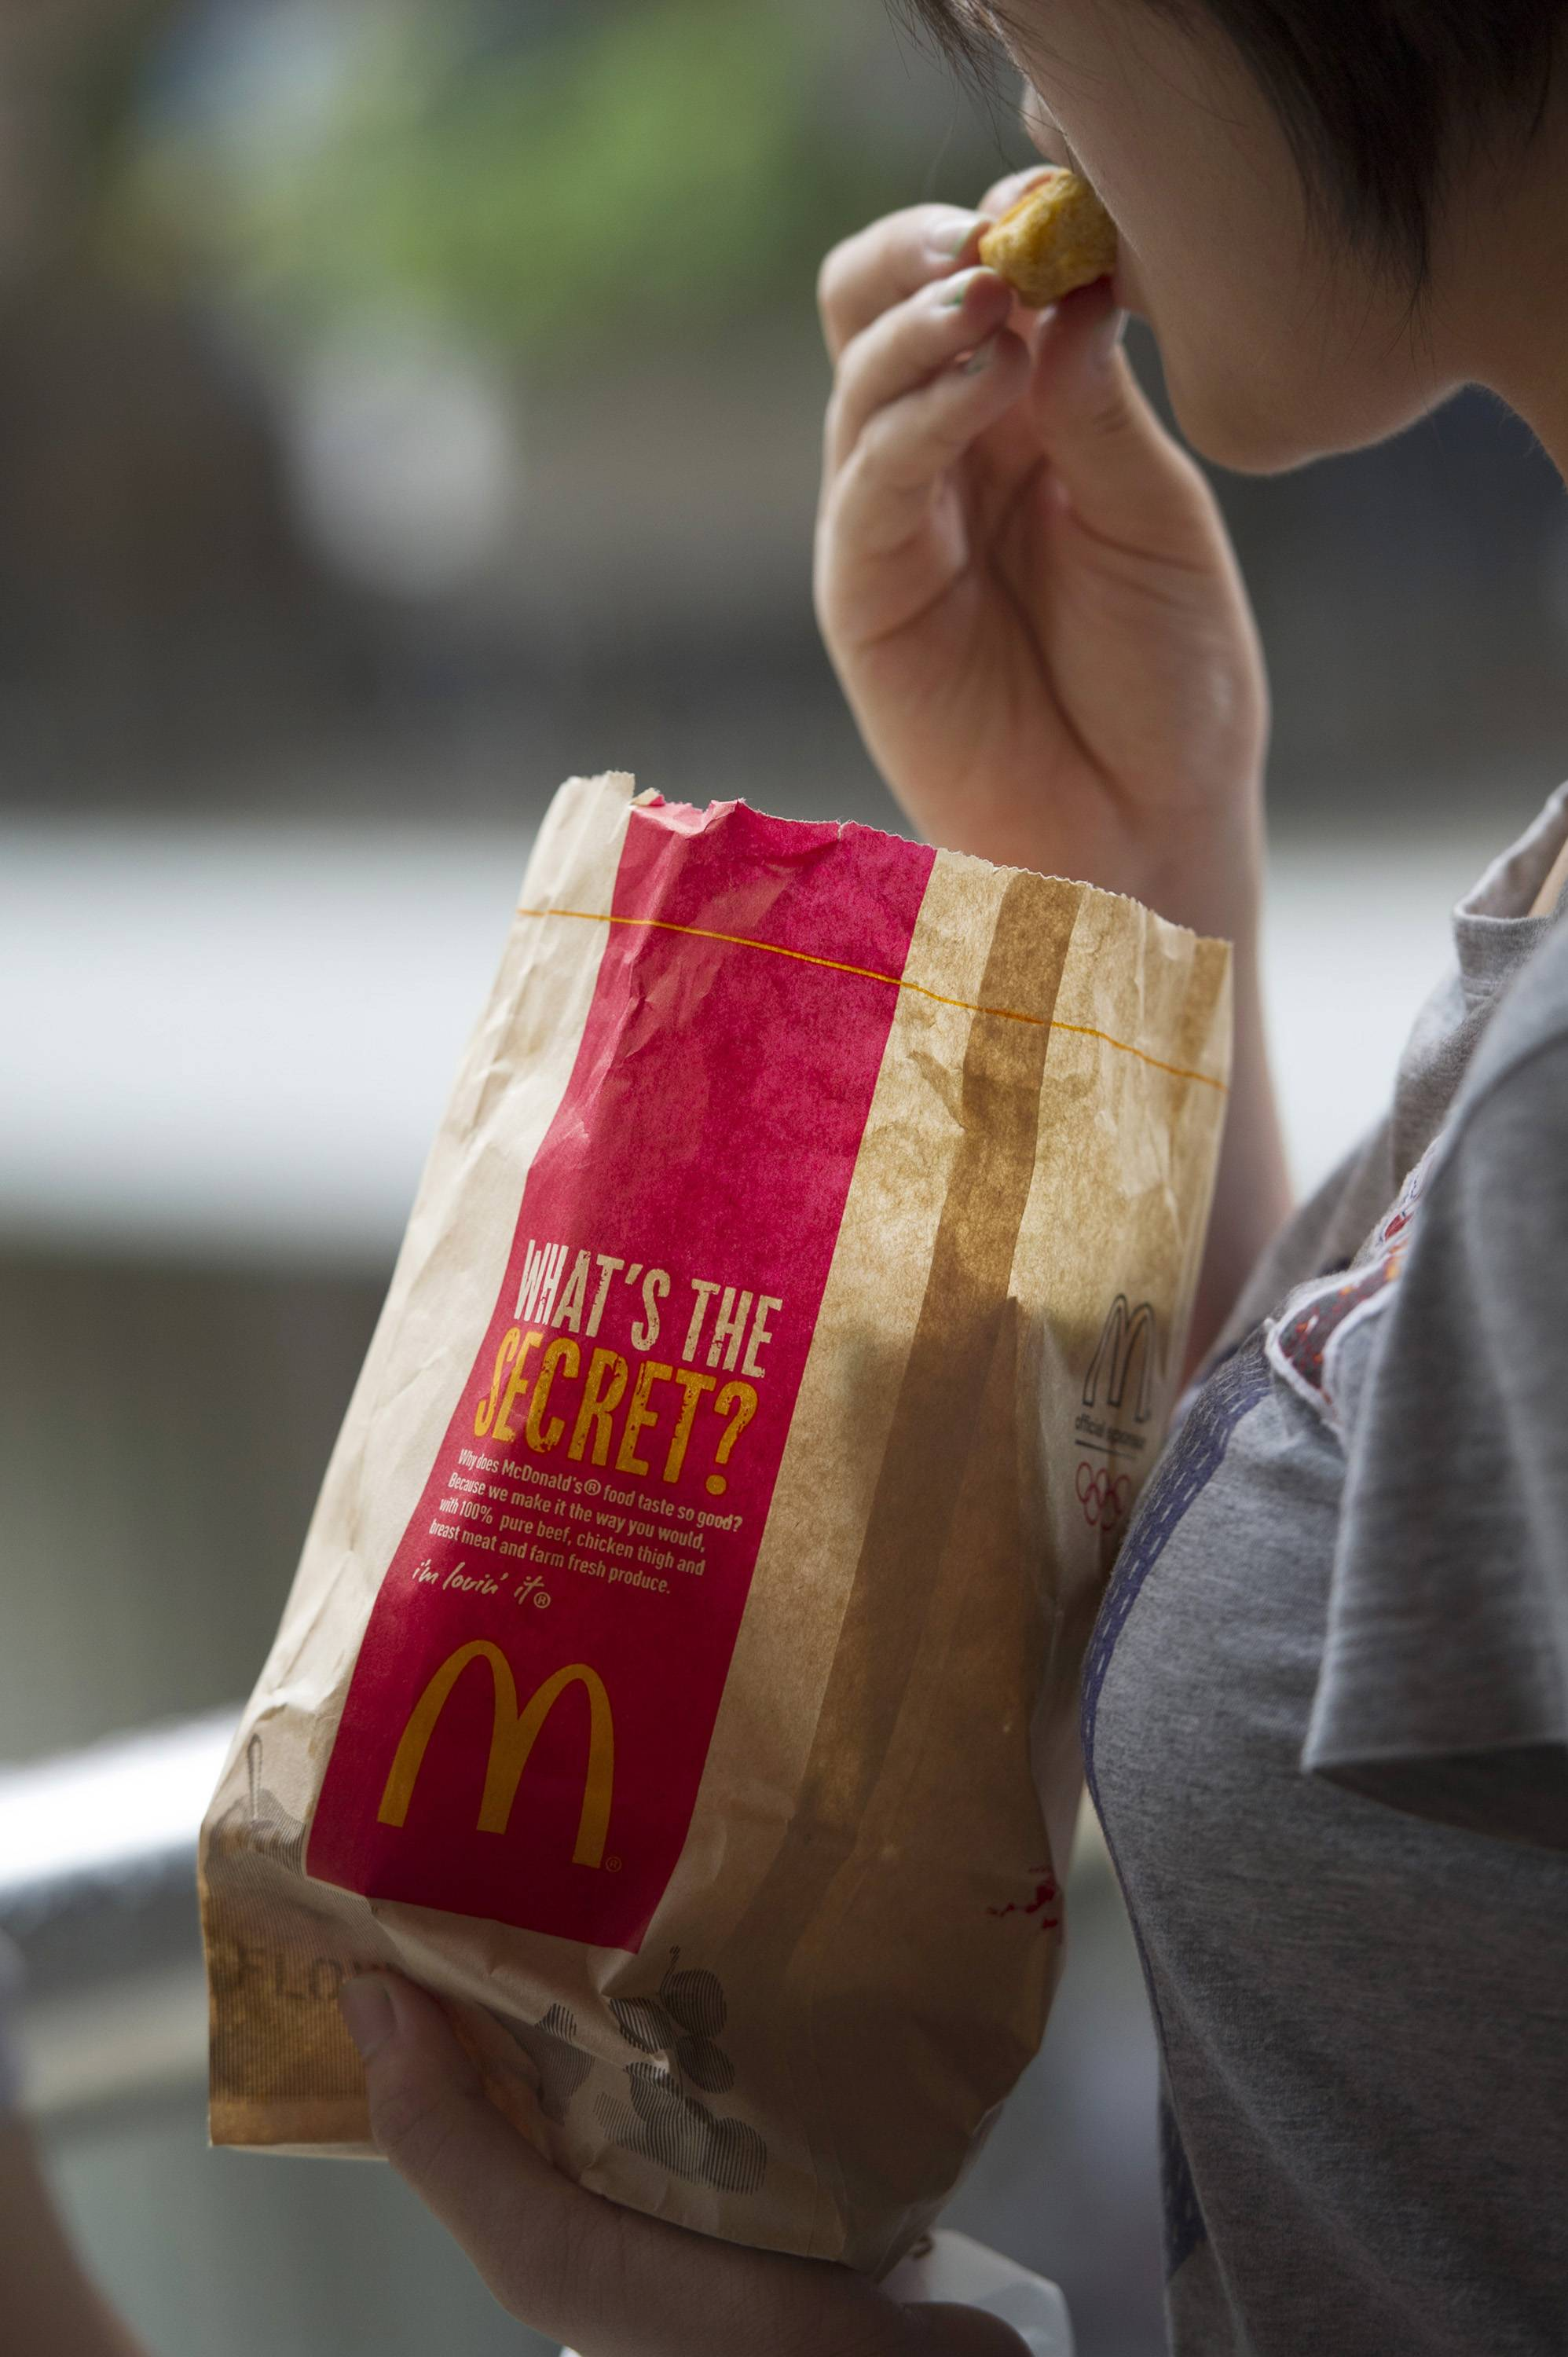 Some McDonald's food has too many calories for the Russian government's liking.